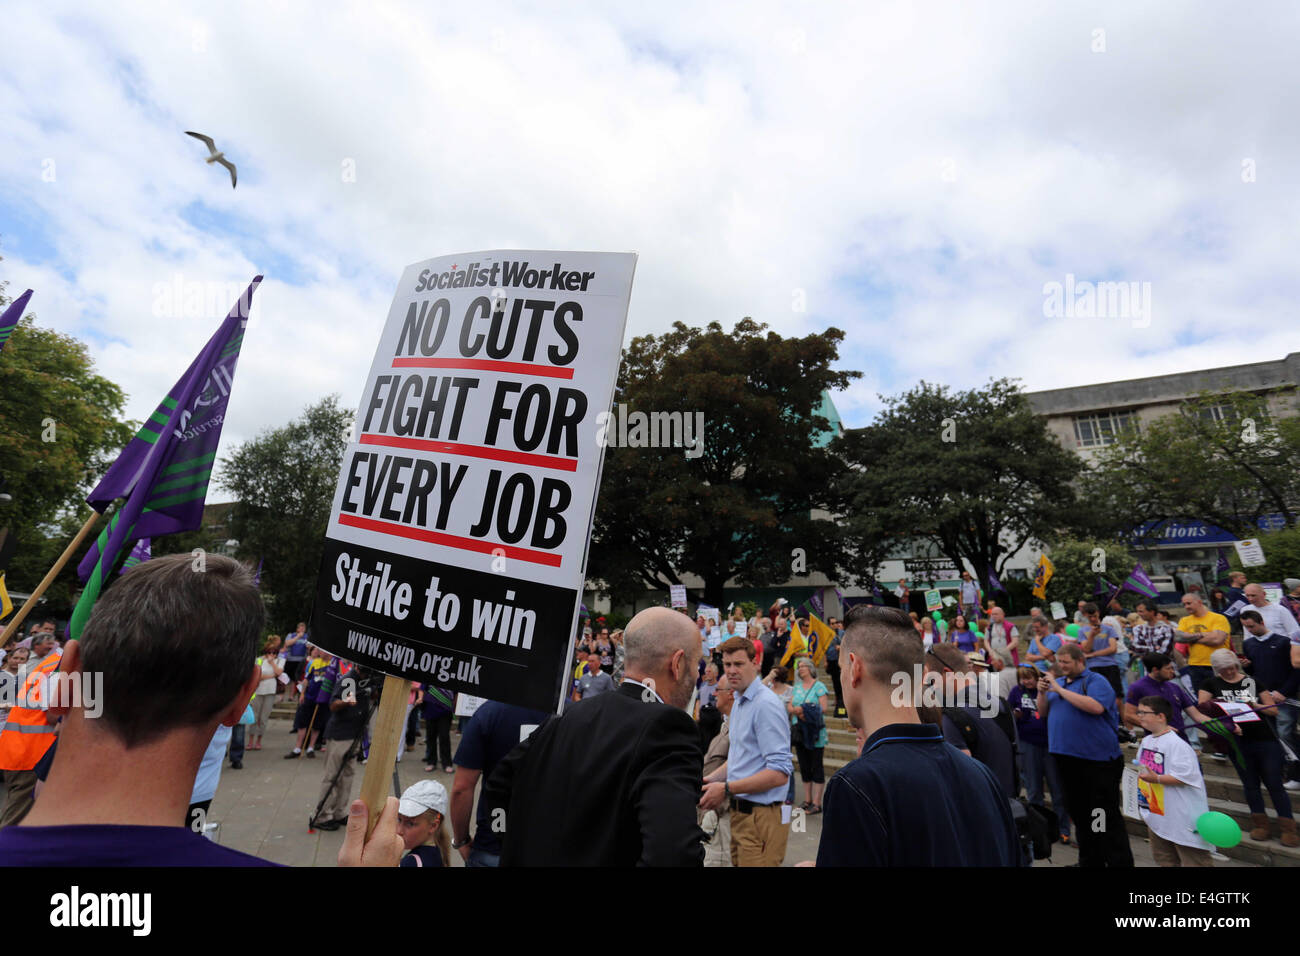 Swansea, UK. 10th July, 2014.  Pictured: A Socialist Workers placard reading 'No Cuts Fight for Every Job' - Stock Image